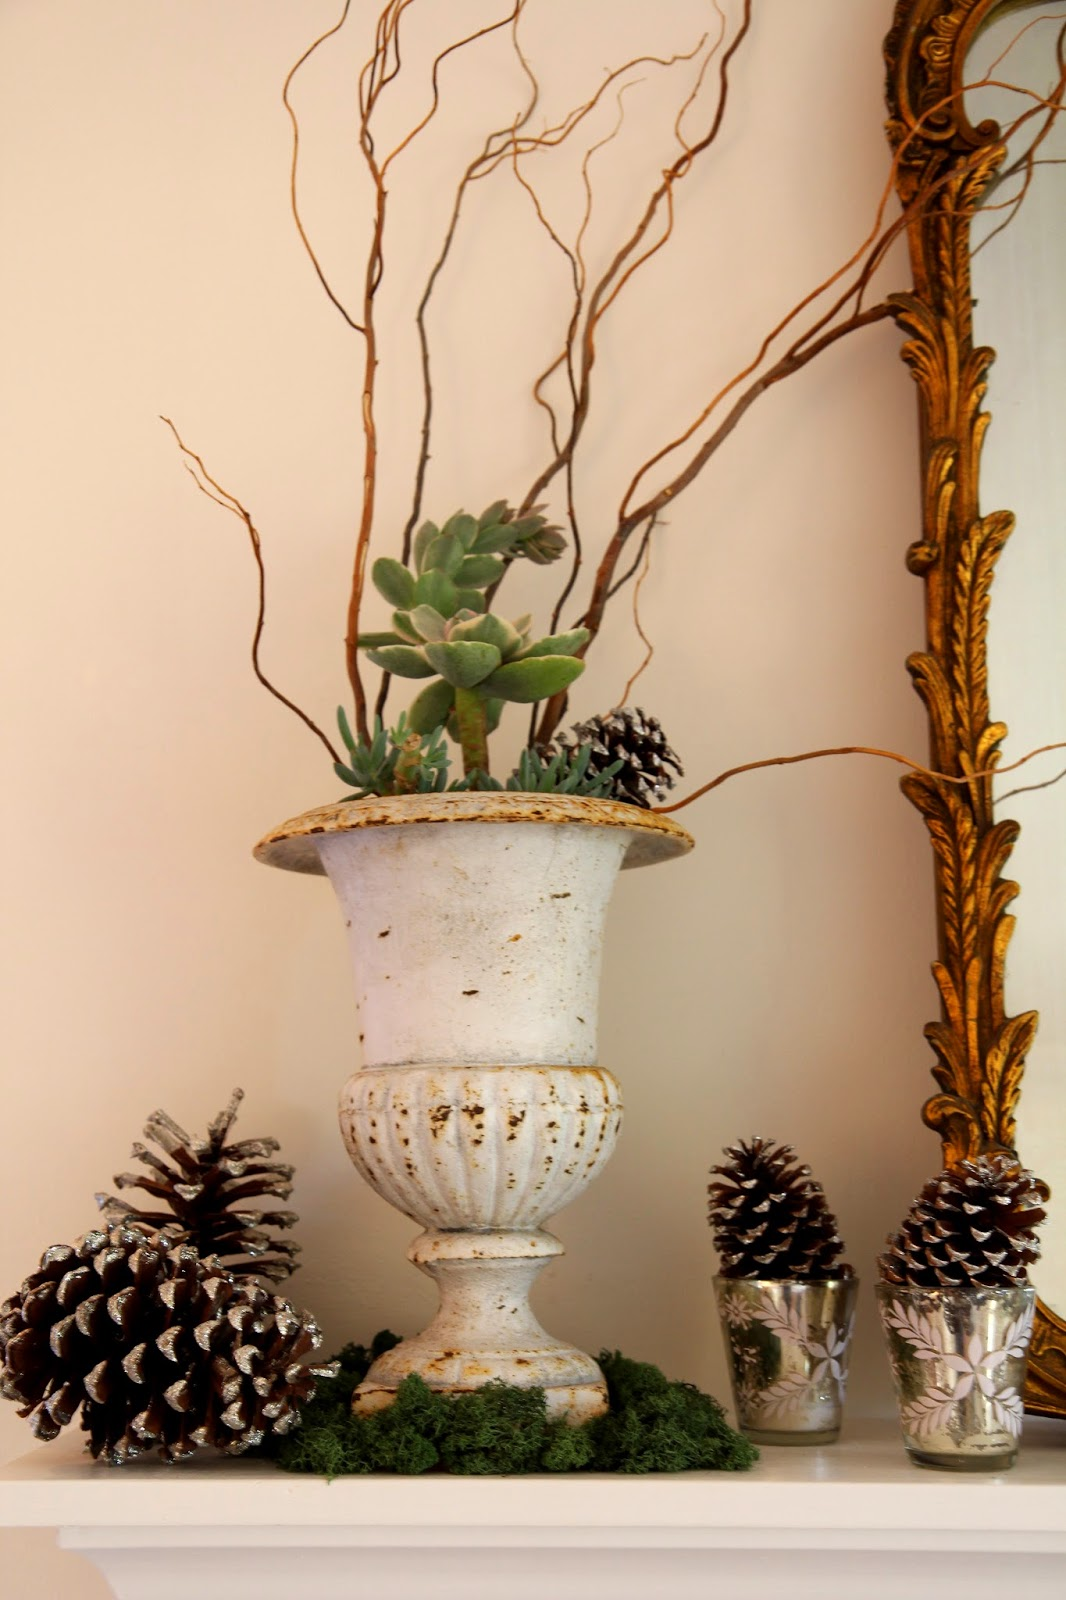 Cast Iron Urn and Glittered Pinecones